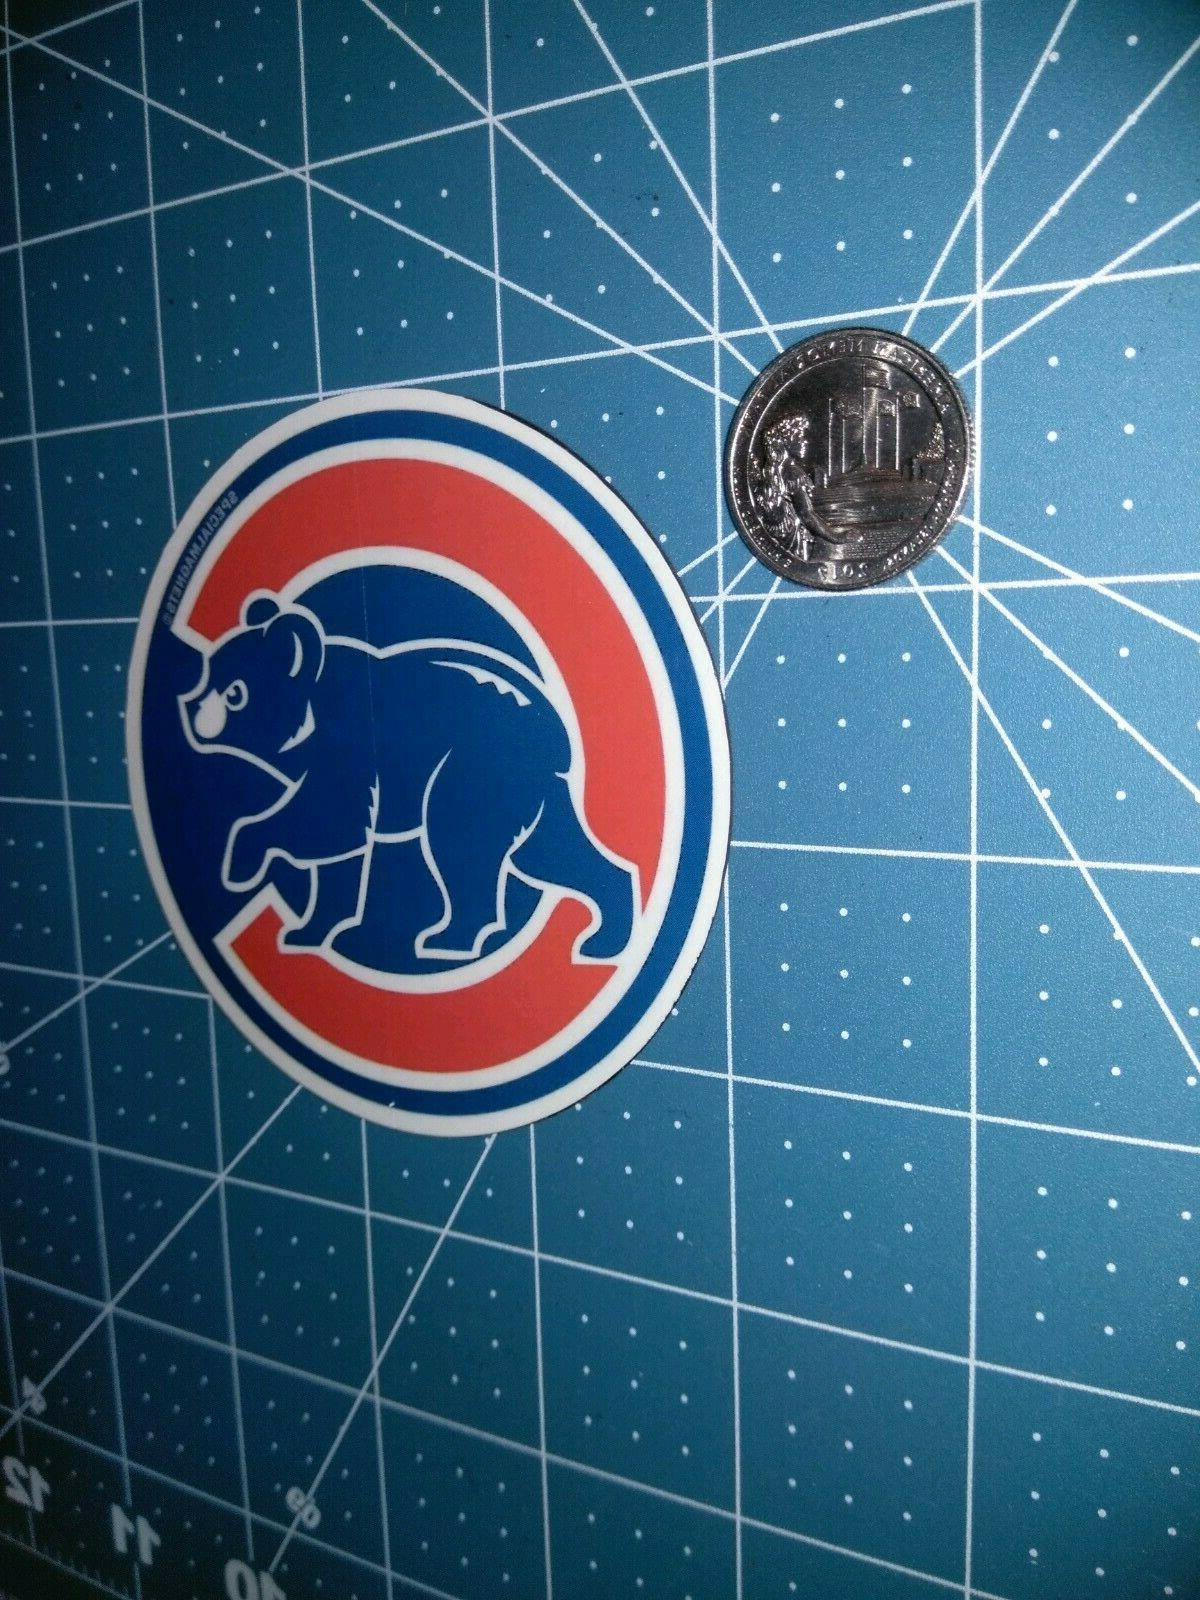 Chicago Cubs decal car bumper sport magnets 1 FREE